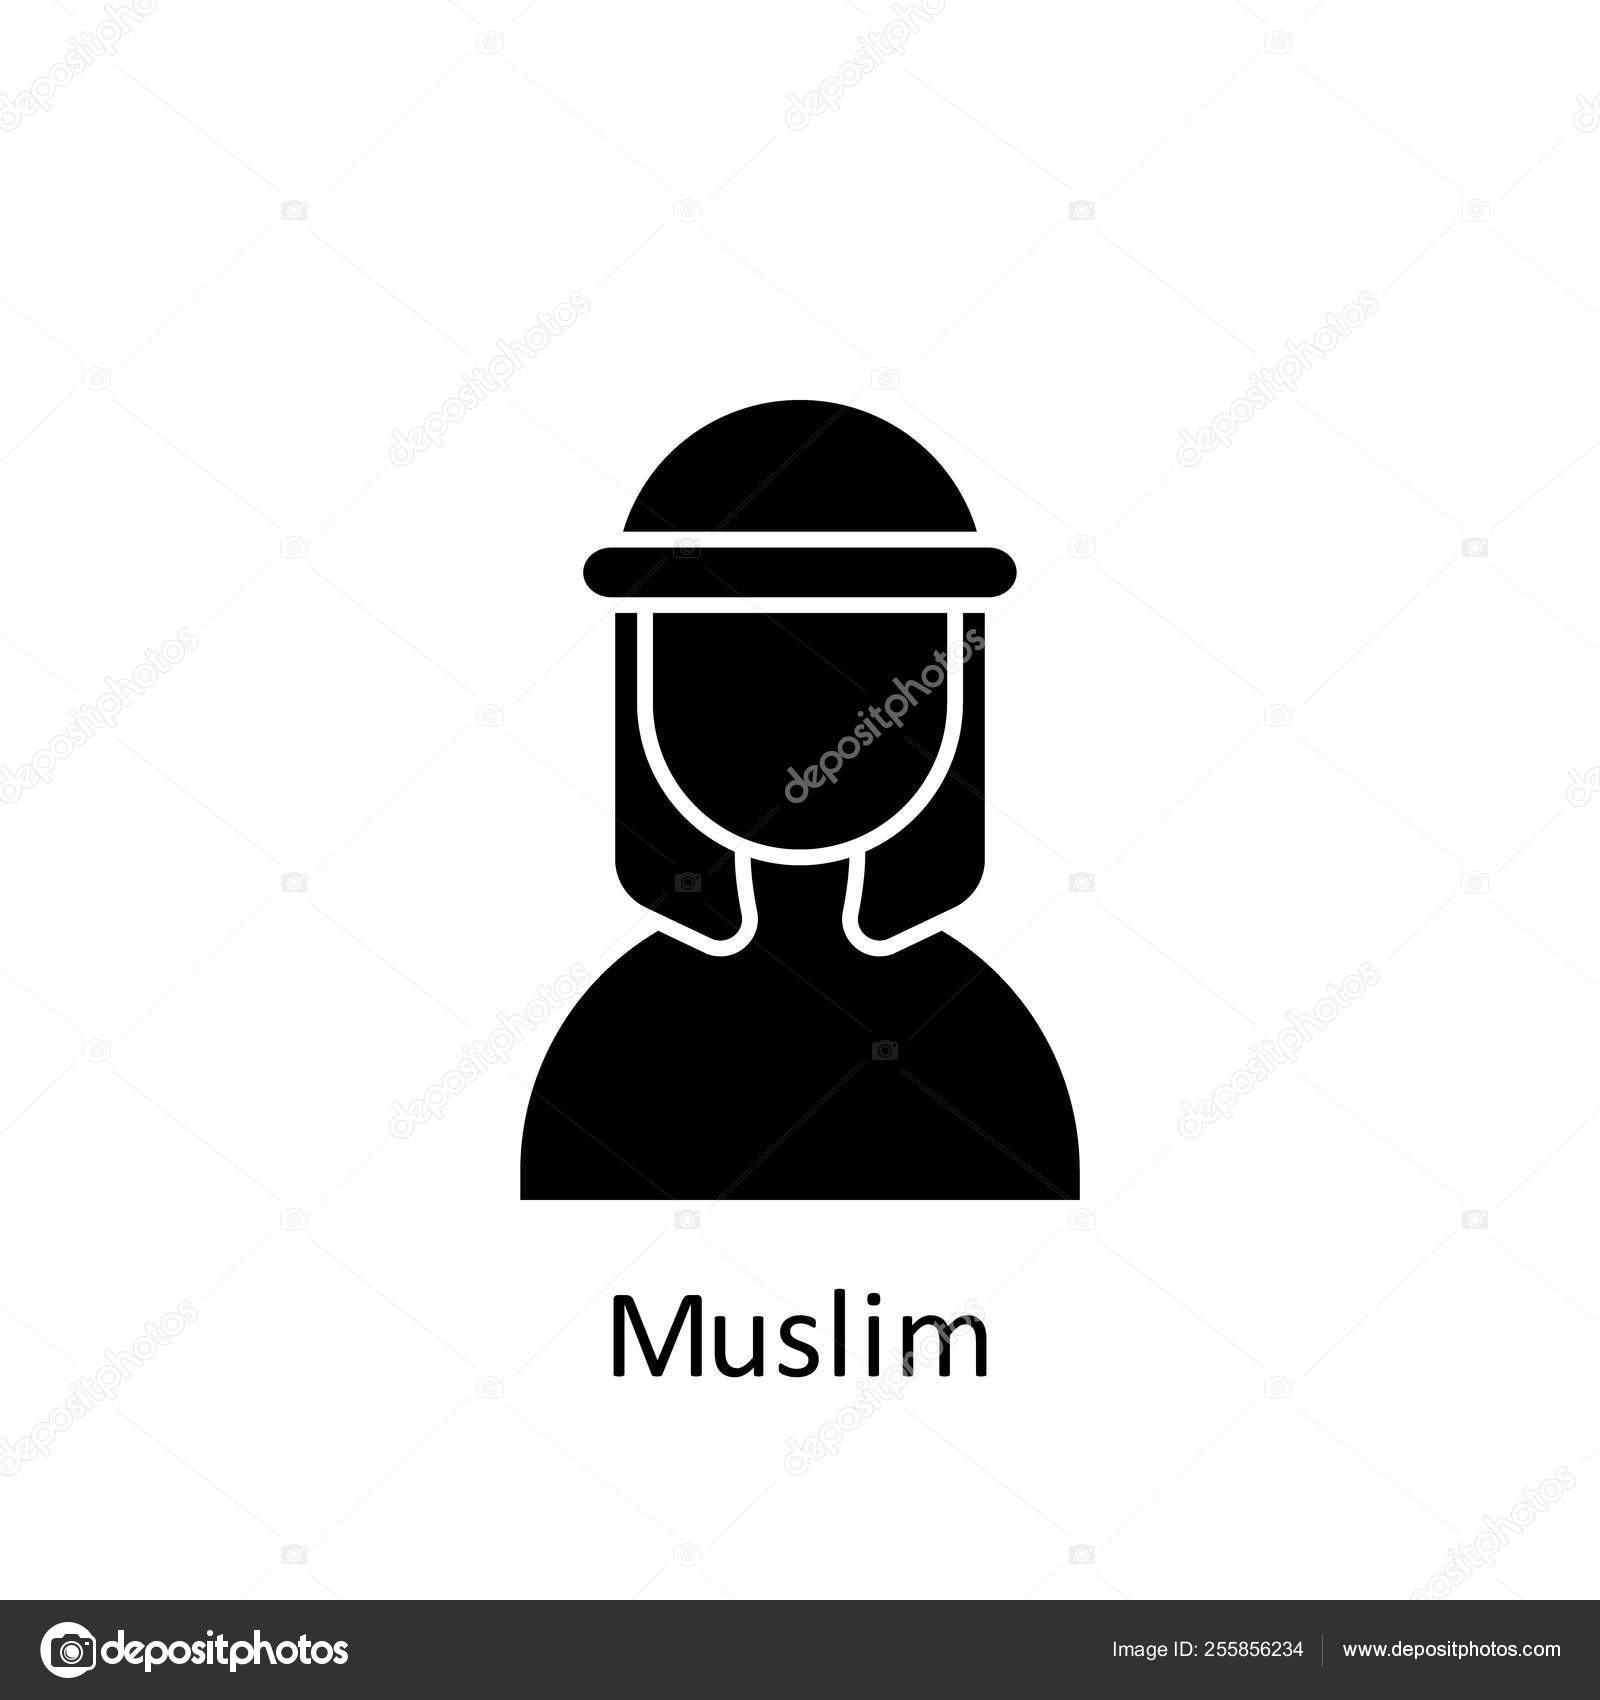 ramadan muslim icon element of ramadan illustration icon muslim islam signs and symbols can be used for web logo mobile app ui ux stock vector c eaglebaku gmail com 255856234 ramadan muslim icon element of ramadan illustration icon muslim islam signs and symbols can be used for web logo mobile app ui ux stock vector c eaglebaku gmail com 255856234